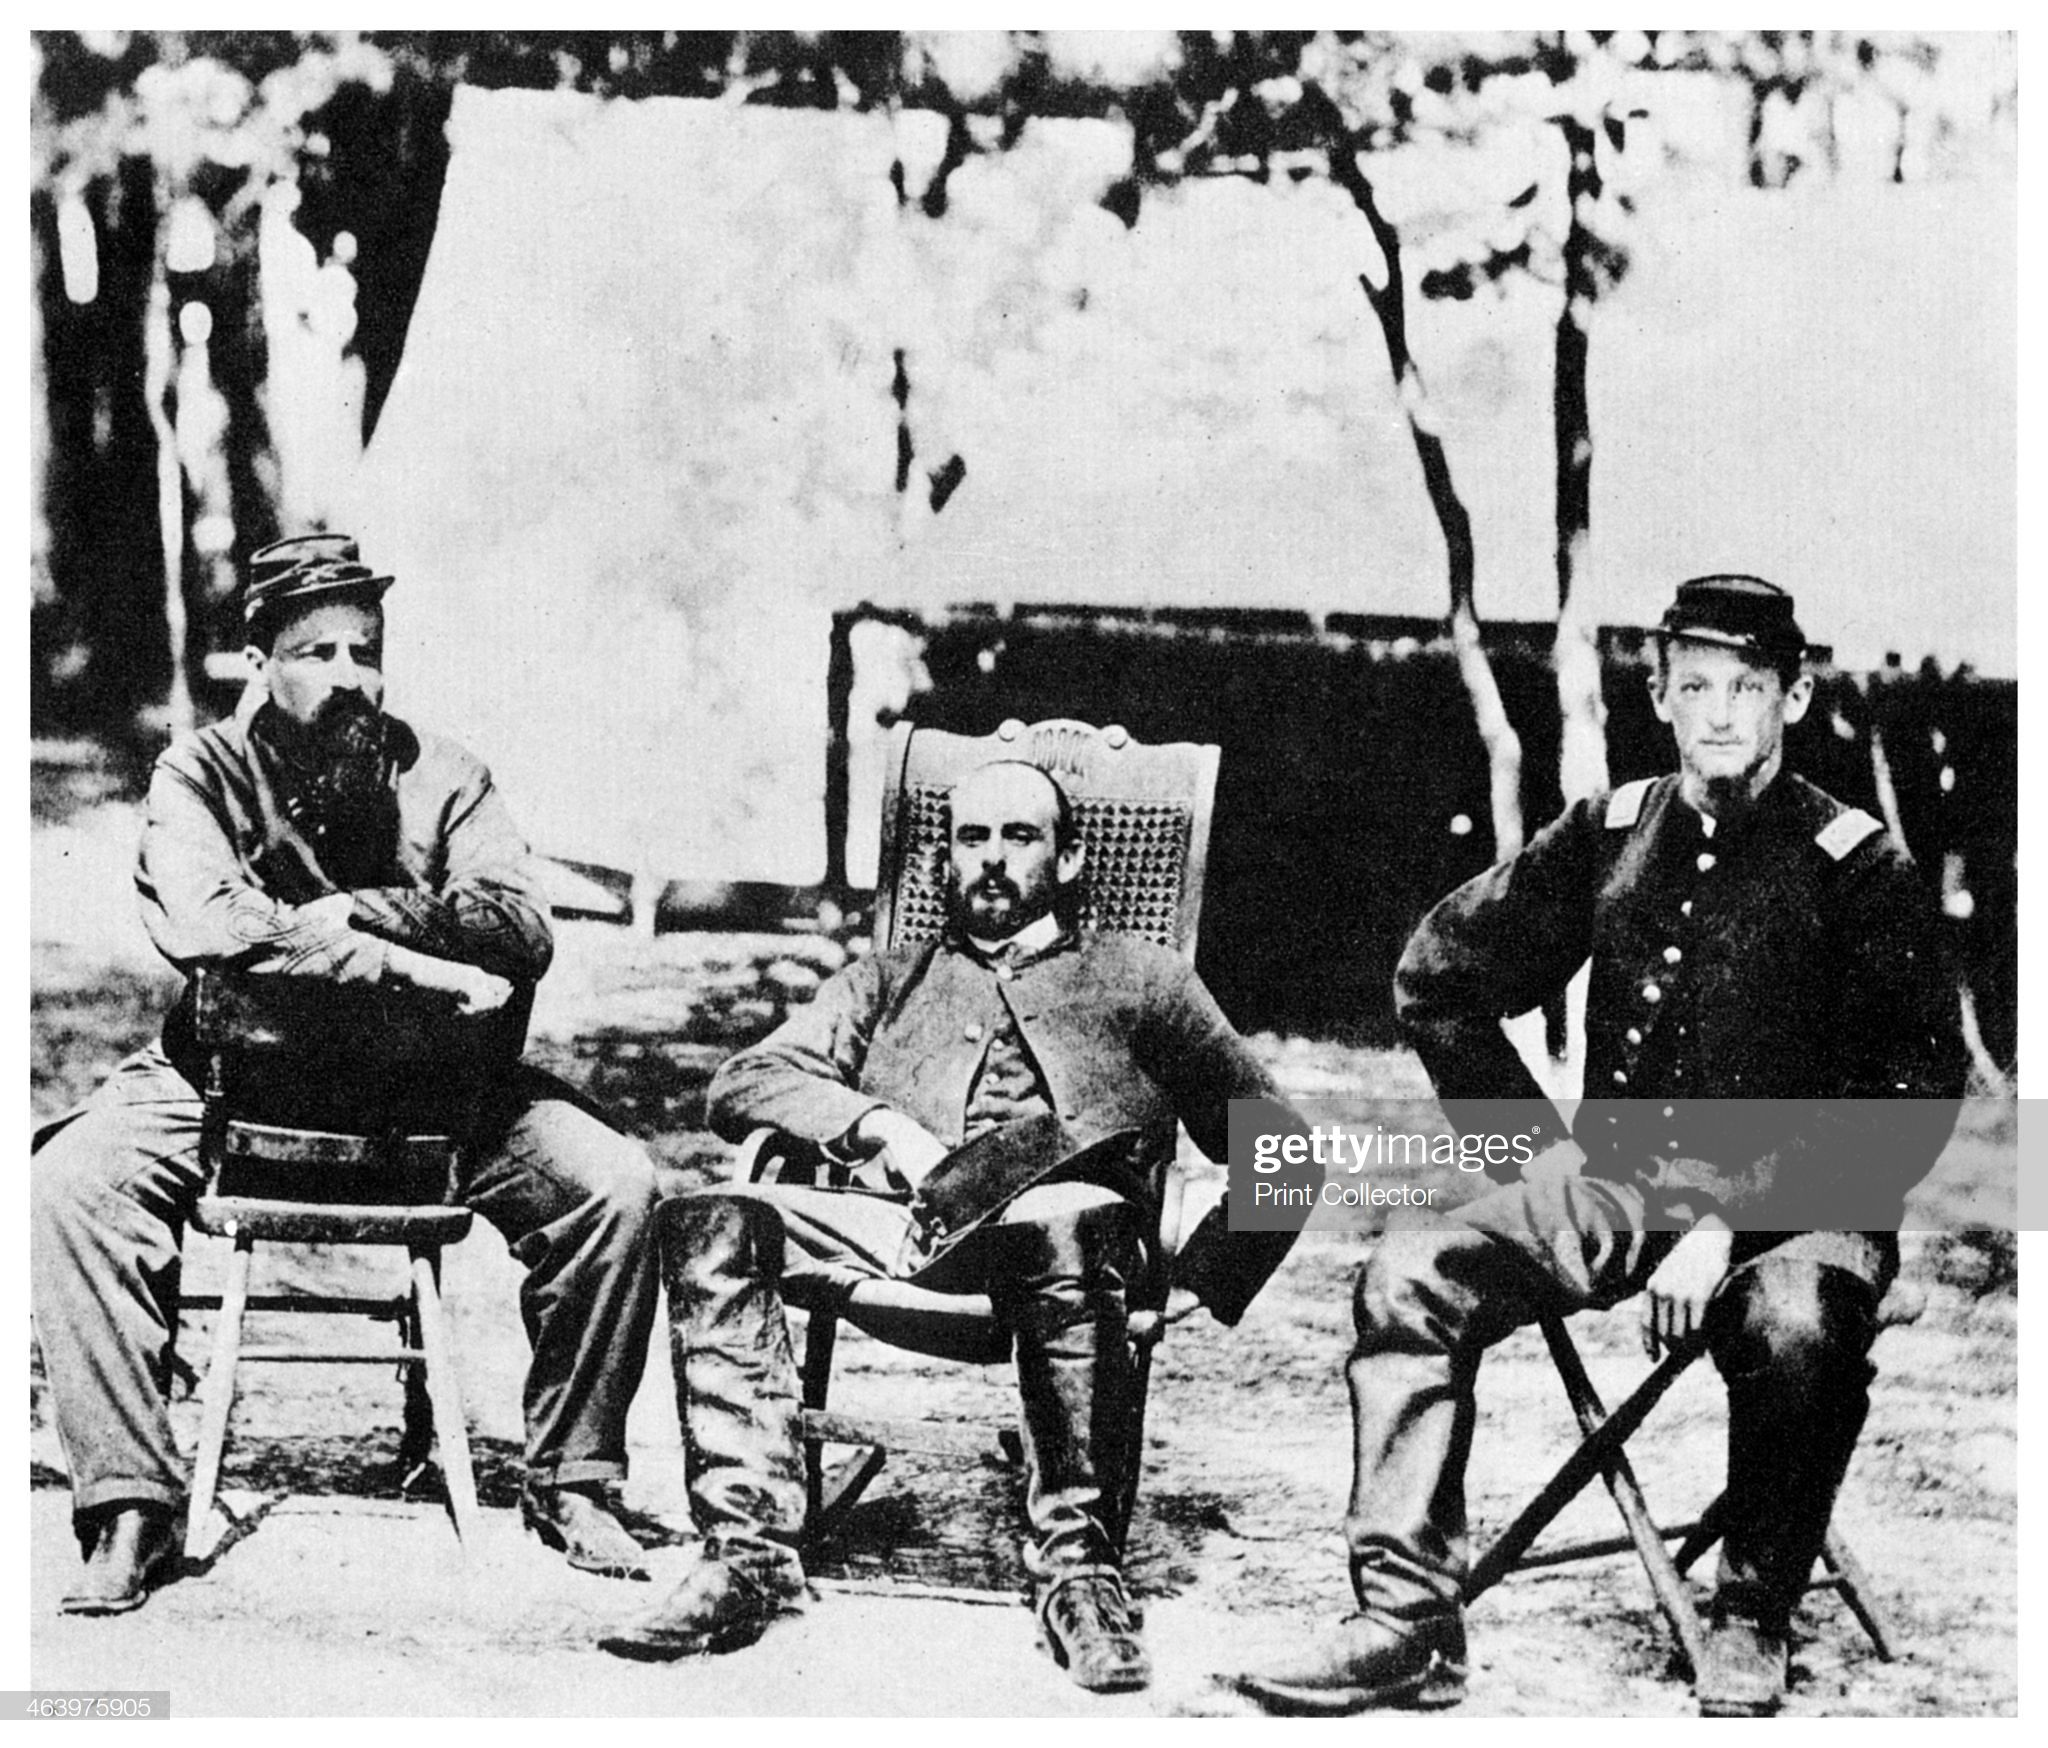 Union Officers Before The Fall Of Petersburg American